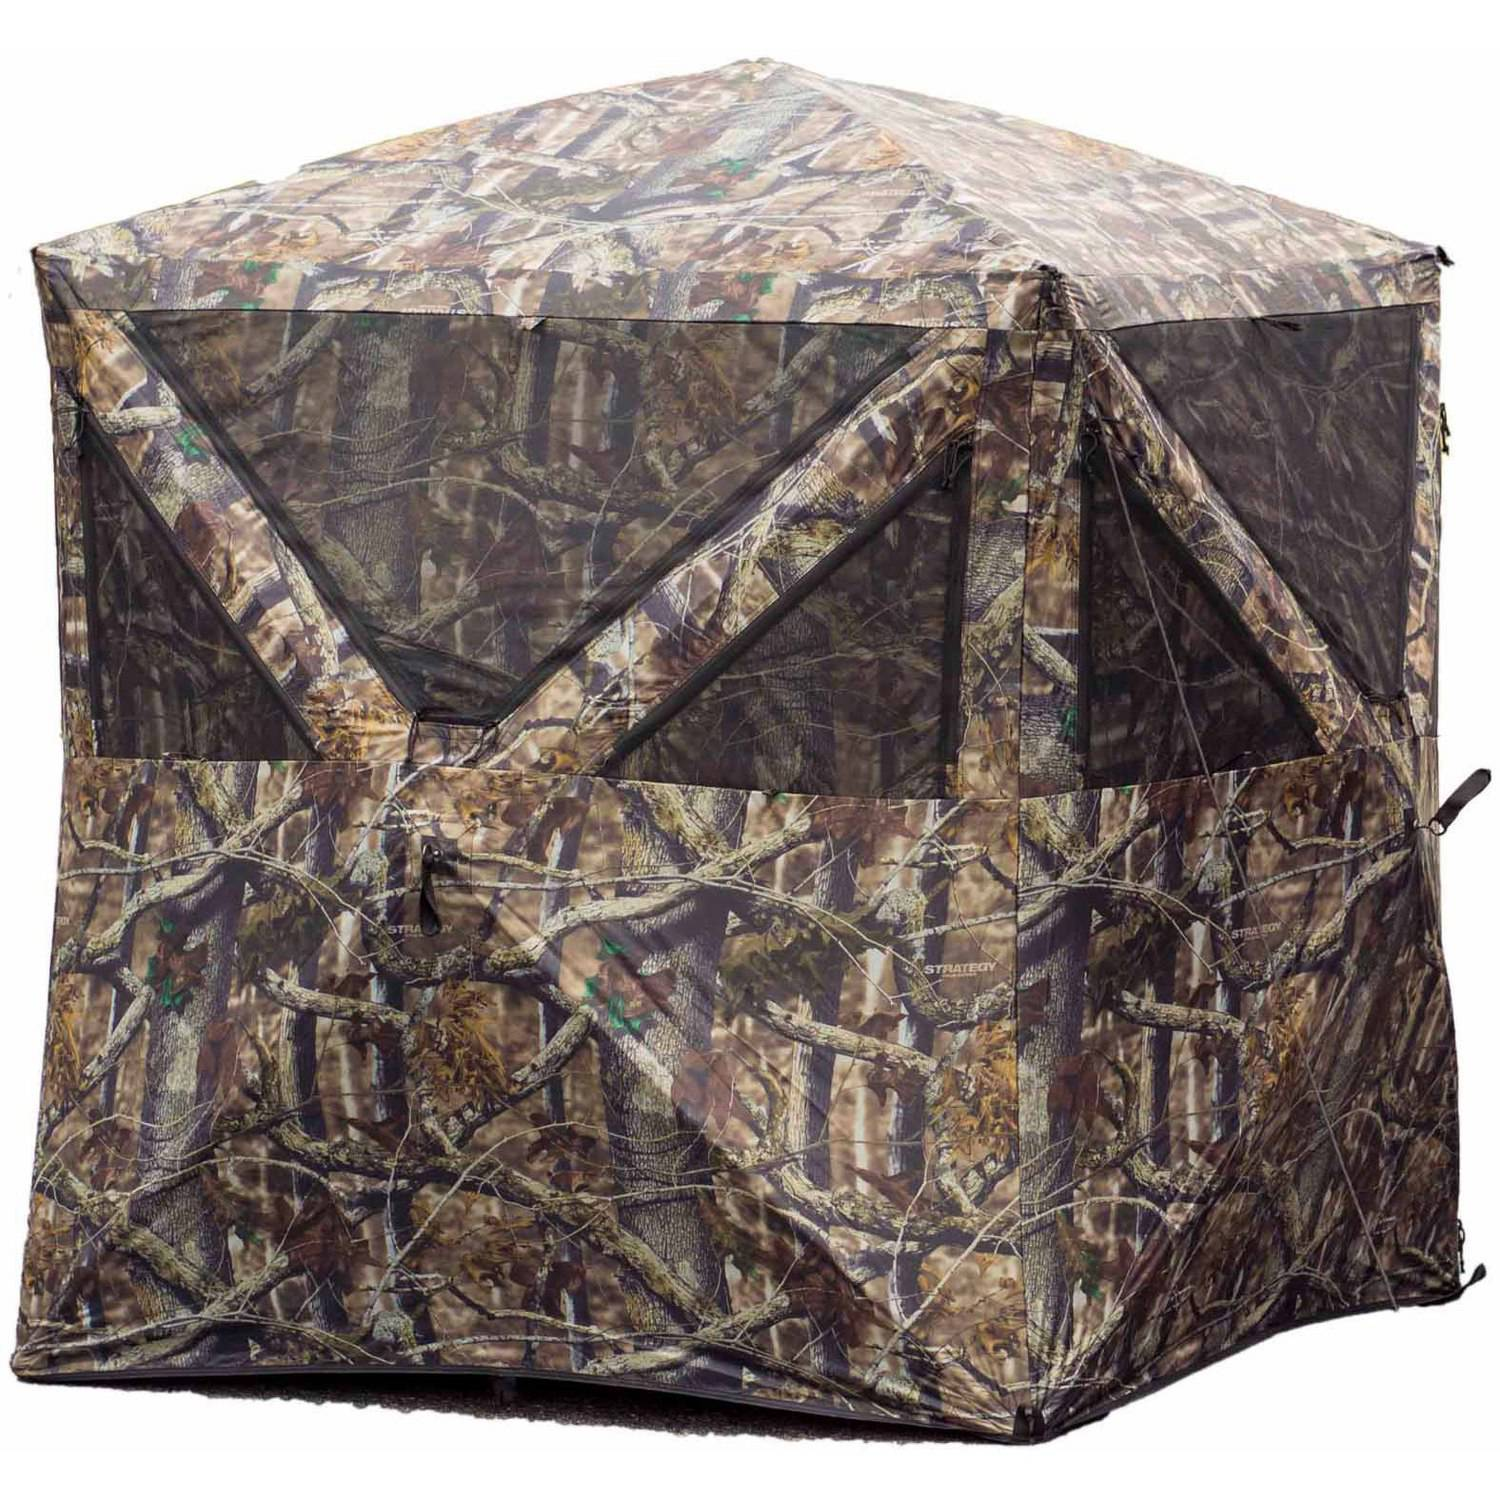 Strategy Hub Hunting Blind, 300 Denier Poly Oxford